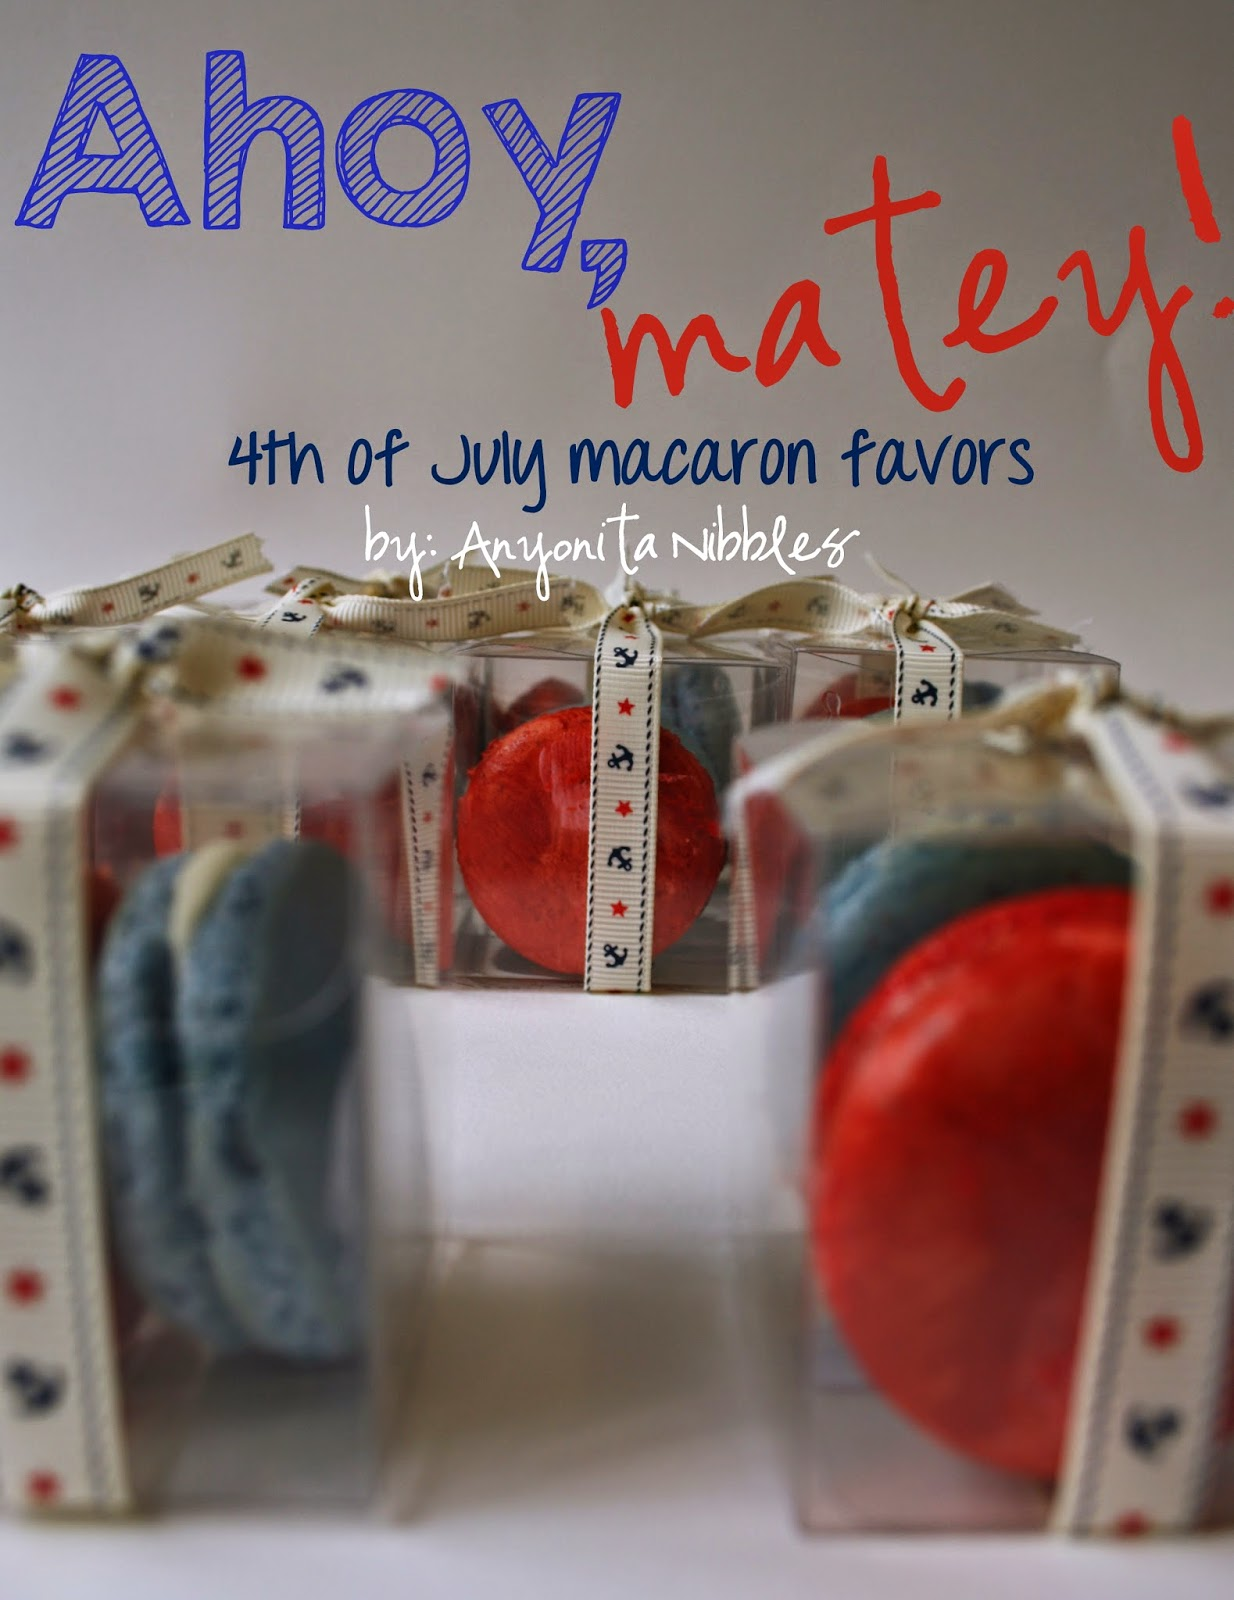 These beautiful red and blue #french #macarons would make an excellent gift for guests at your #fourthofjuly barbecue.